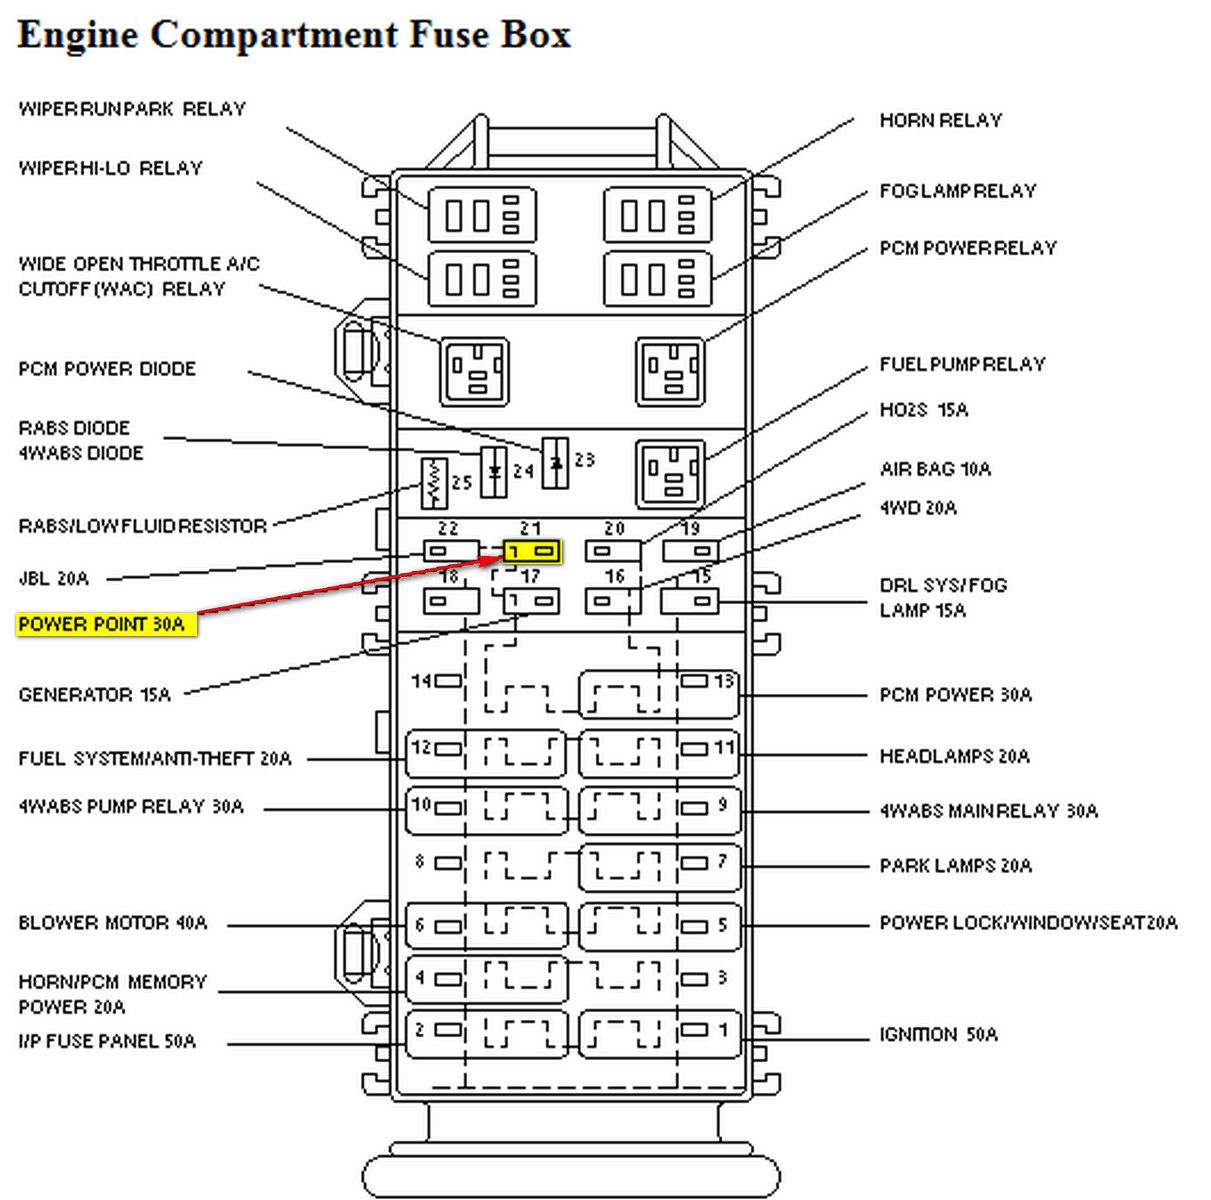 rv as well 1994 ford f 150 fuse box diagram on fuse box for kenworth rh [ 1211 x 1200 Pixel ]